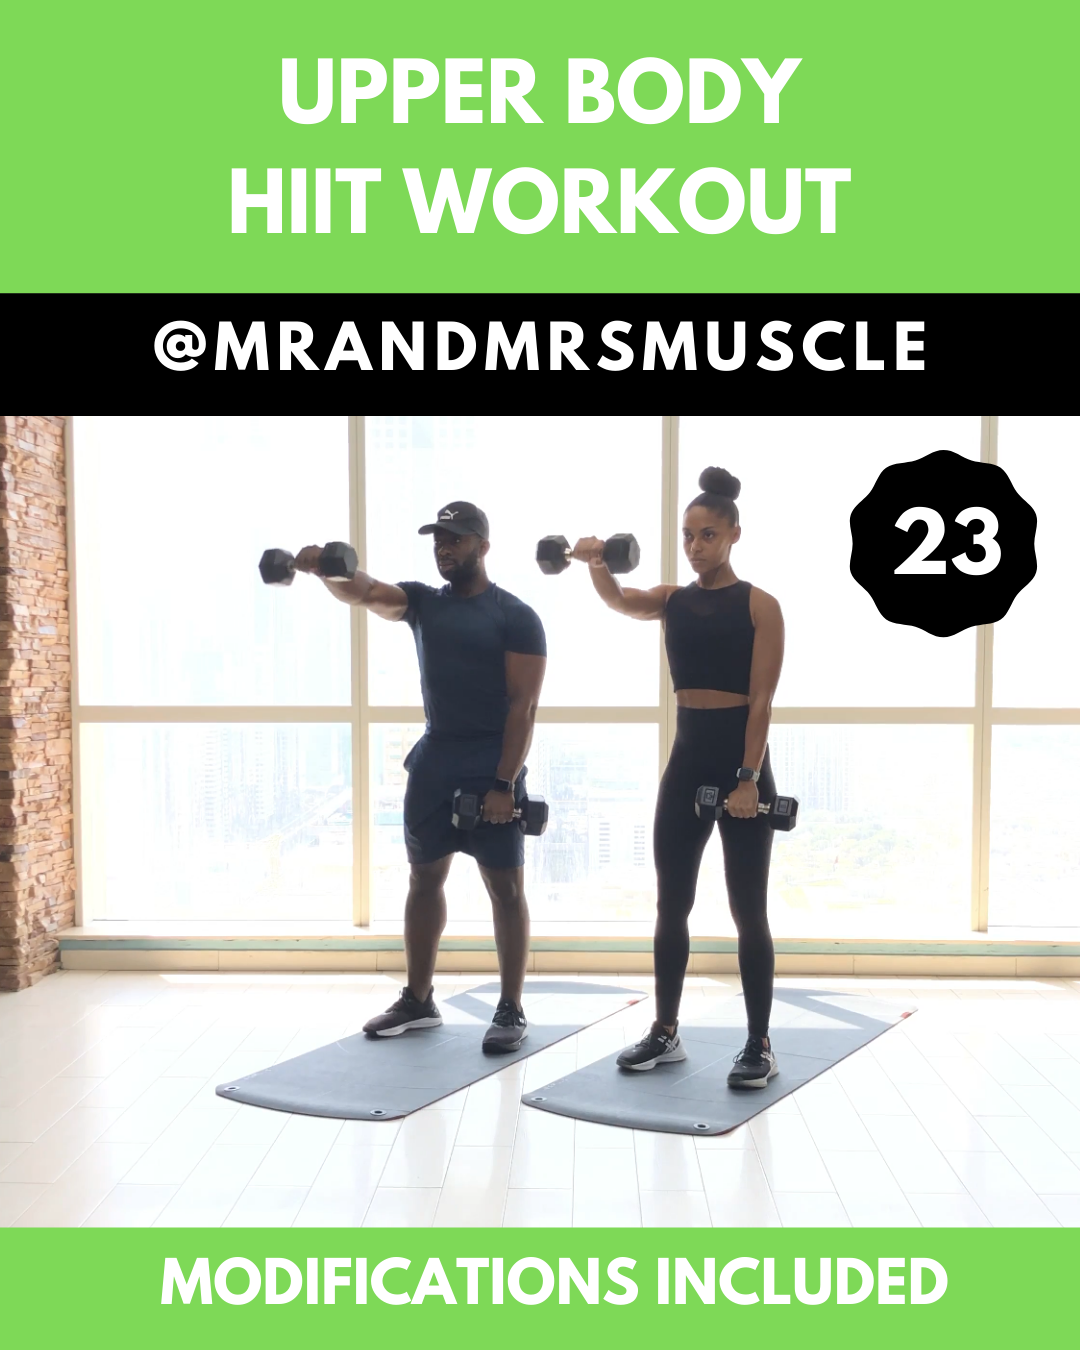 Upper Body Workout - HIIT with modifications